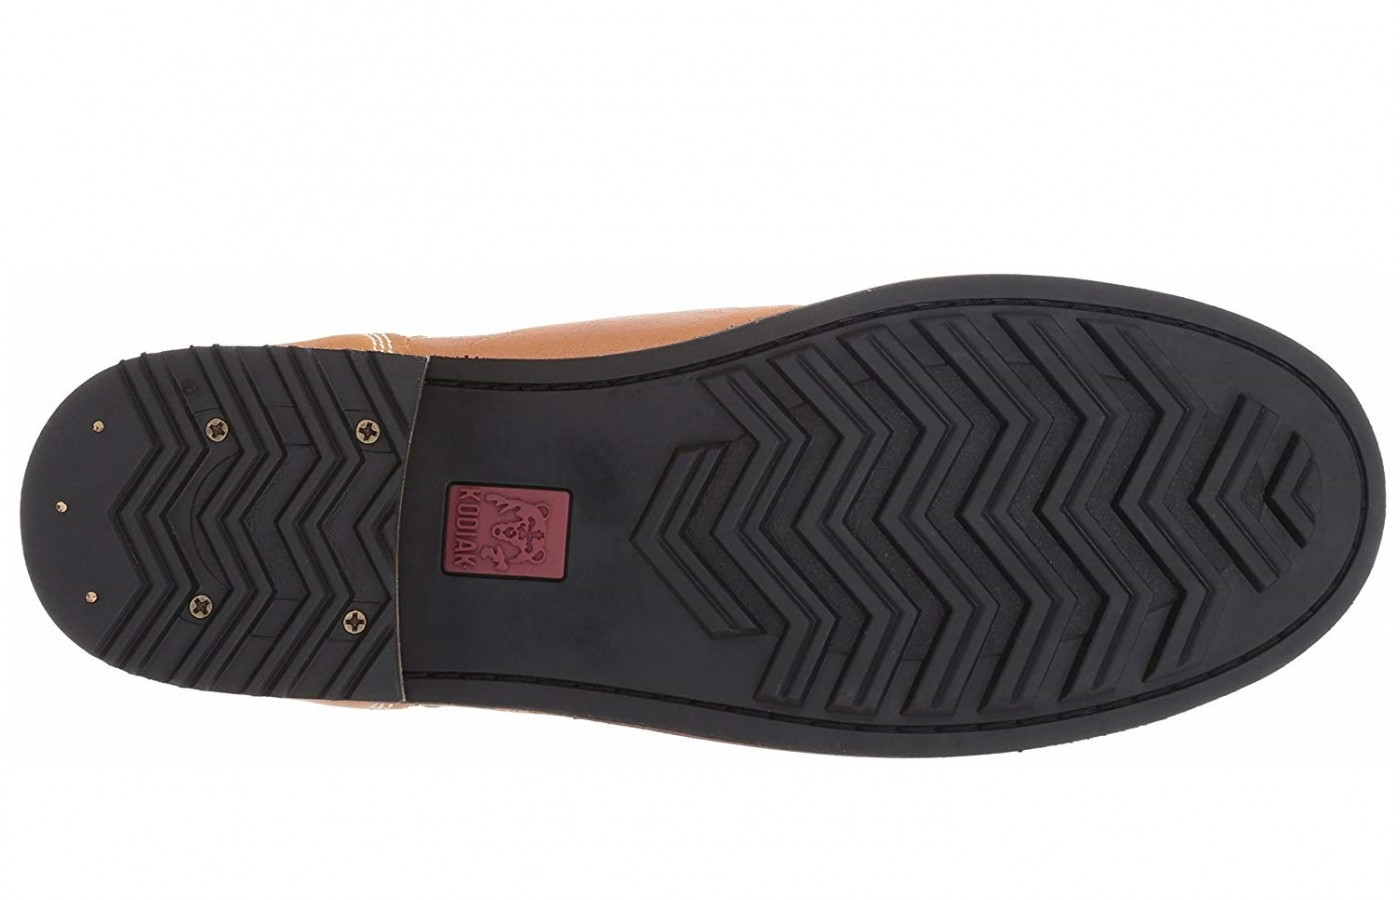 This product offers chevron leather outsoles in order to offer superior traction.